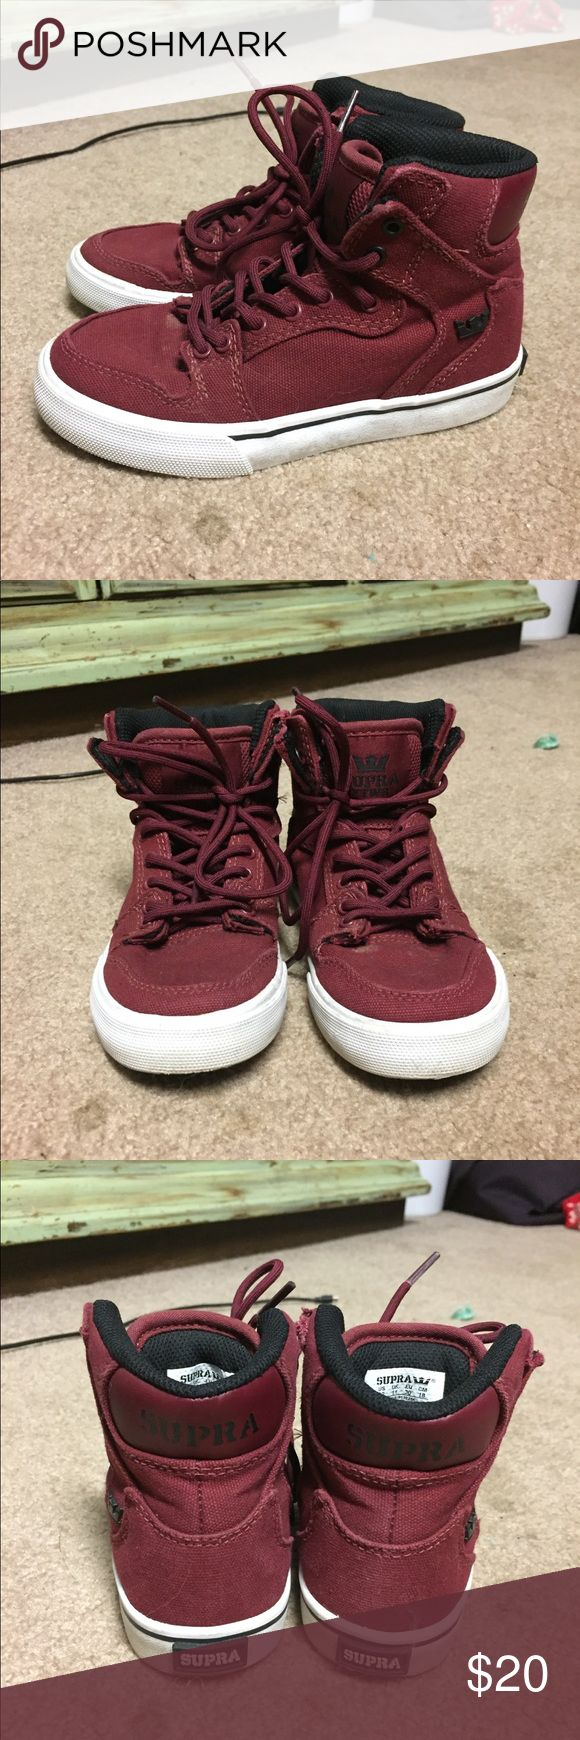 Supra high top kids shoe Kids size 12. Used but in great condition! Maroon red. Supra Shoes Sneakers